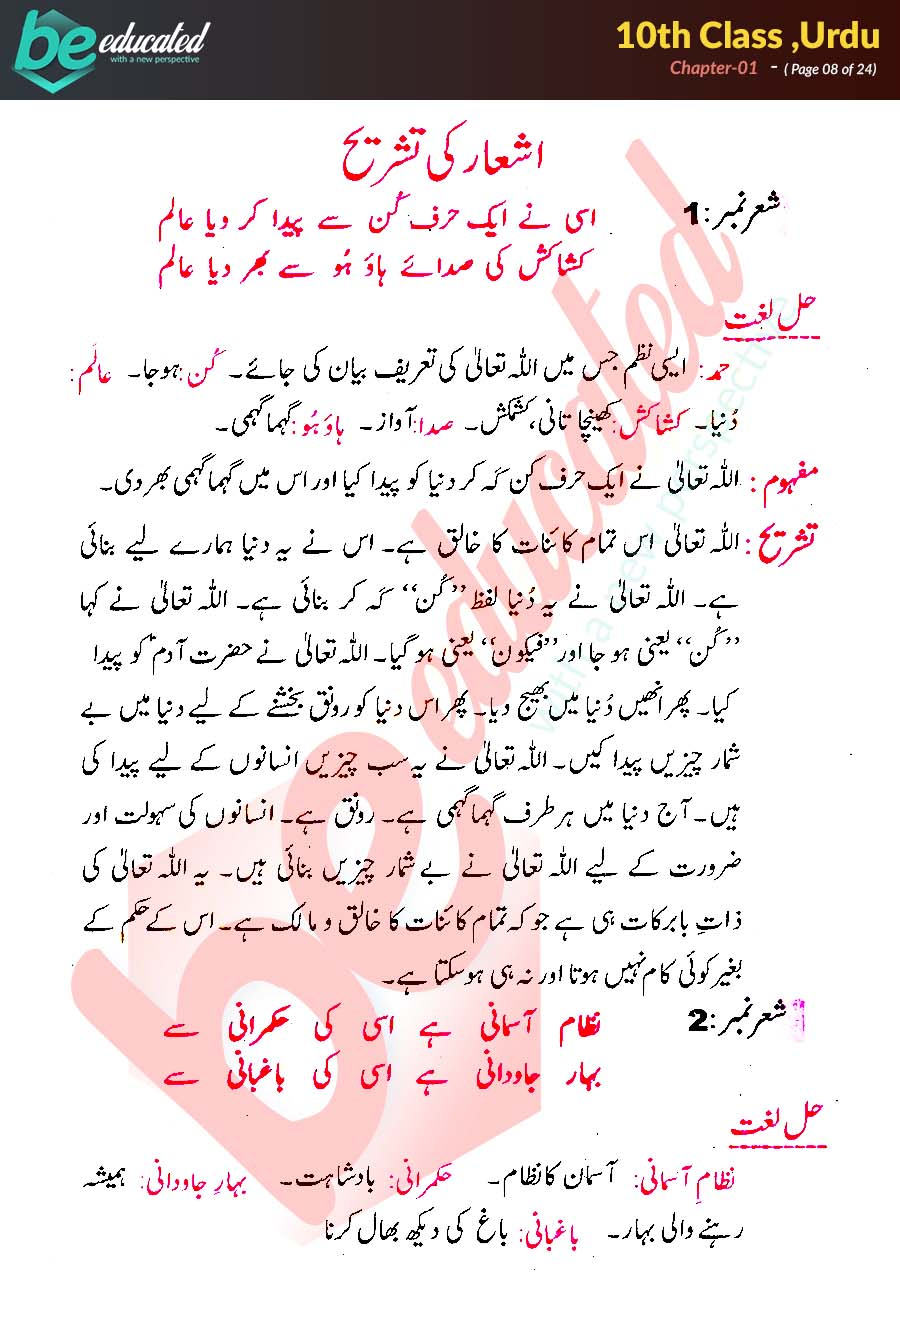 Chapter 1 Urdu 10th Class Notes - Matric Part 2 Notes